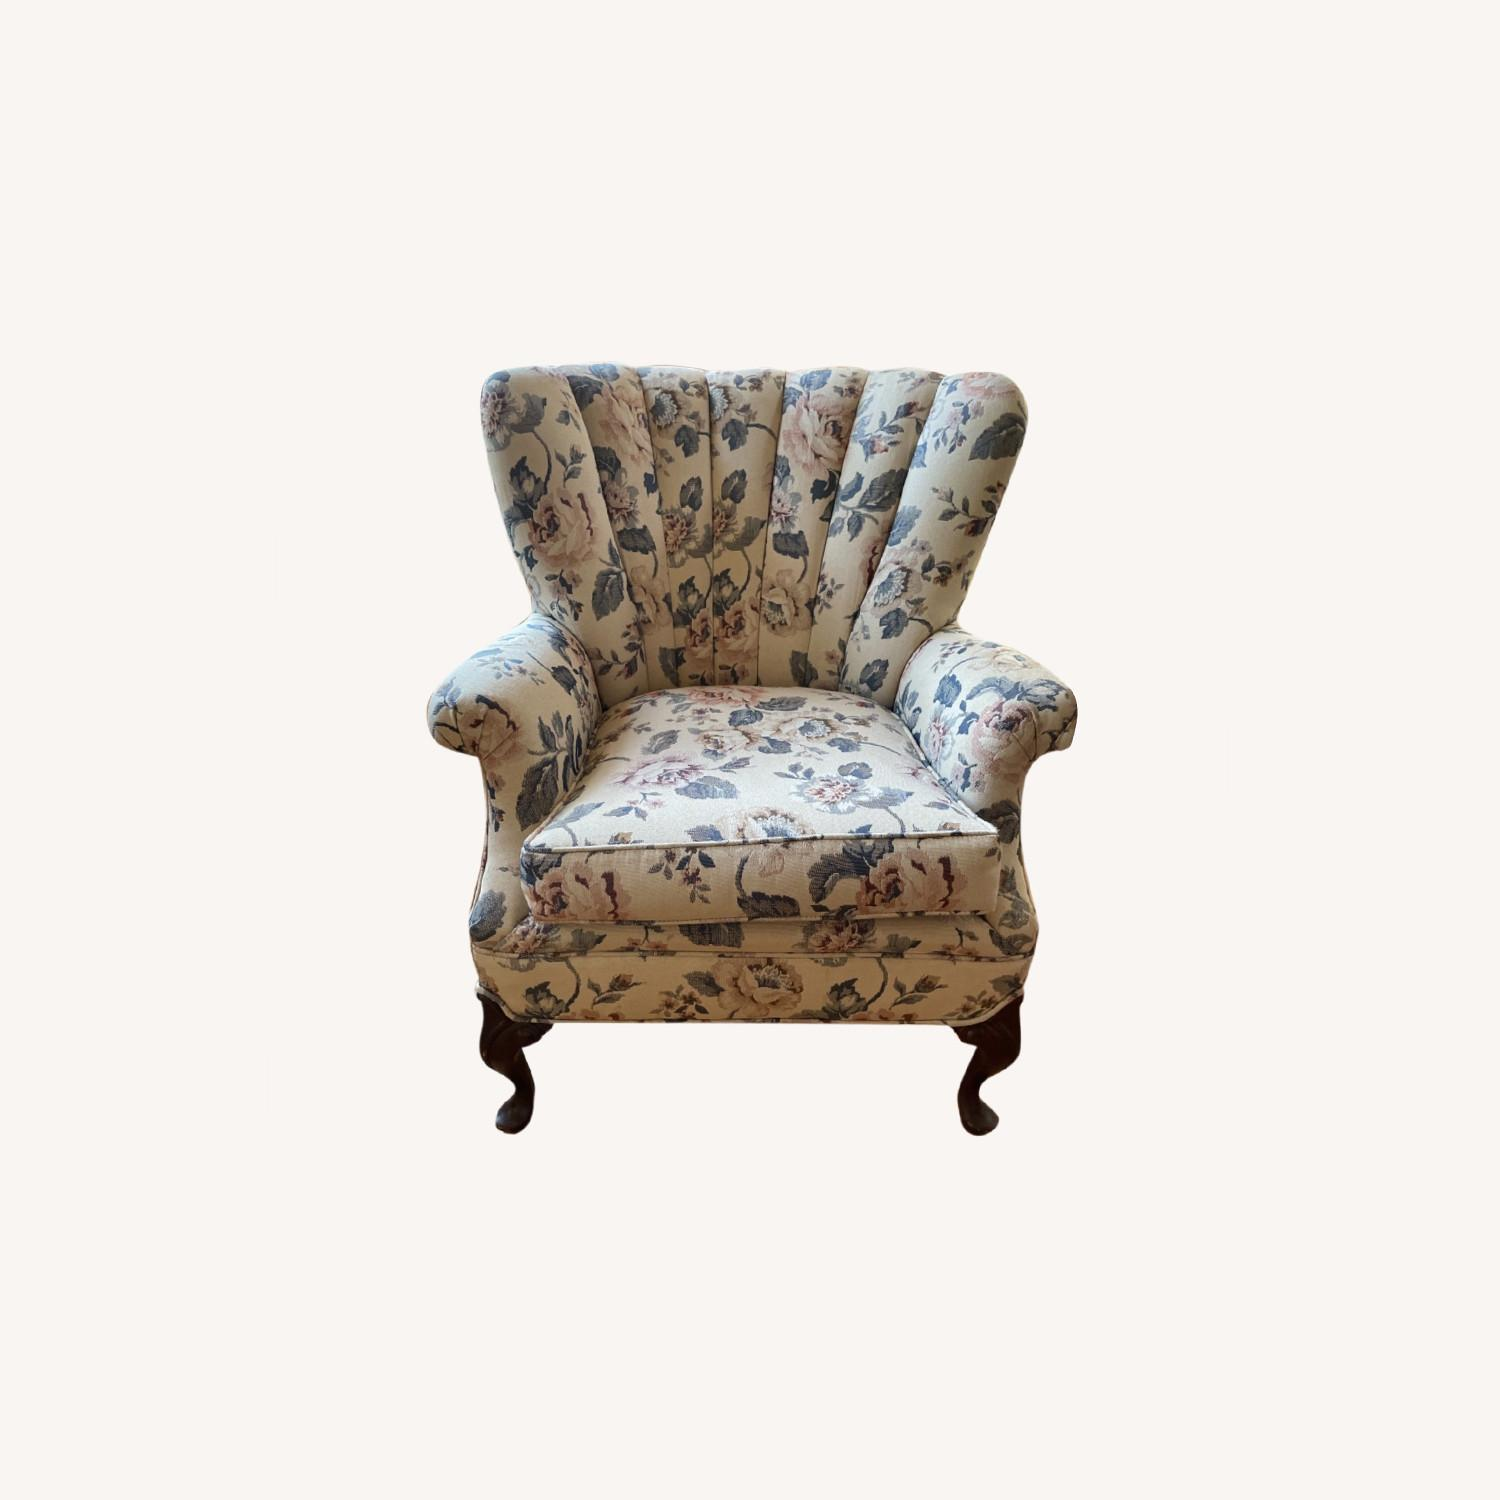 Matching Antique Arm Chairs - image-0